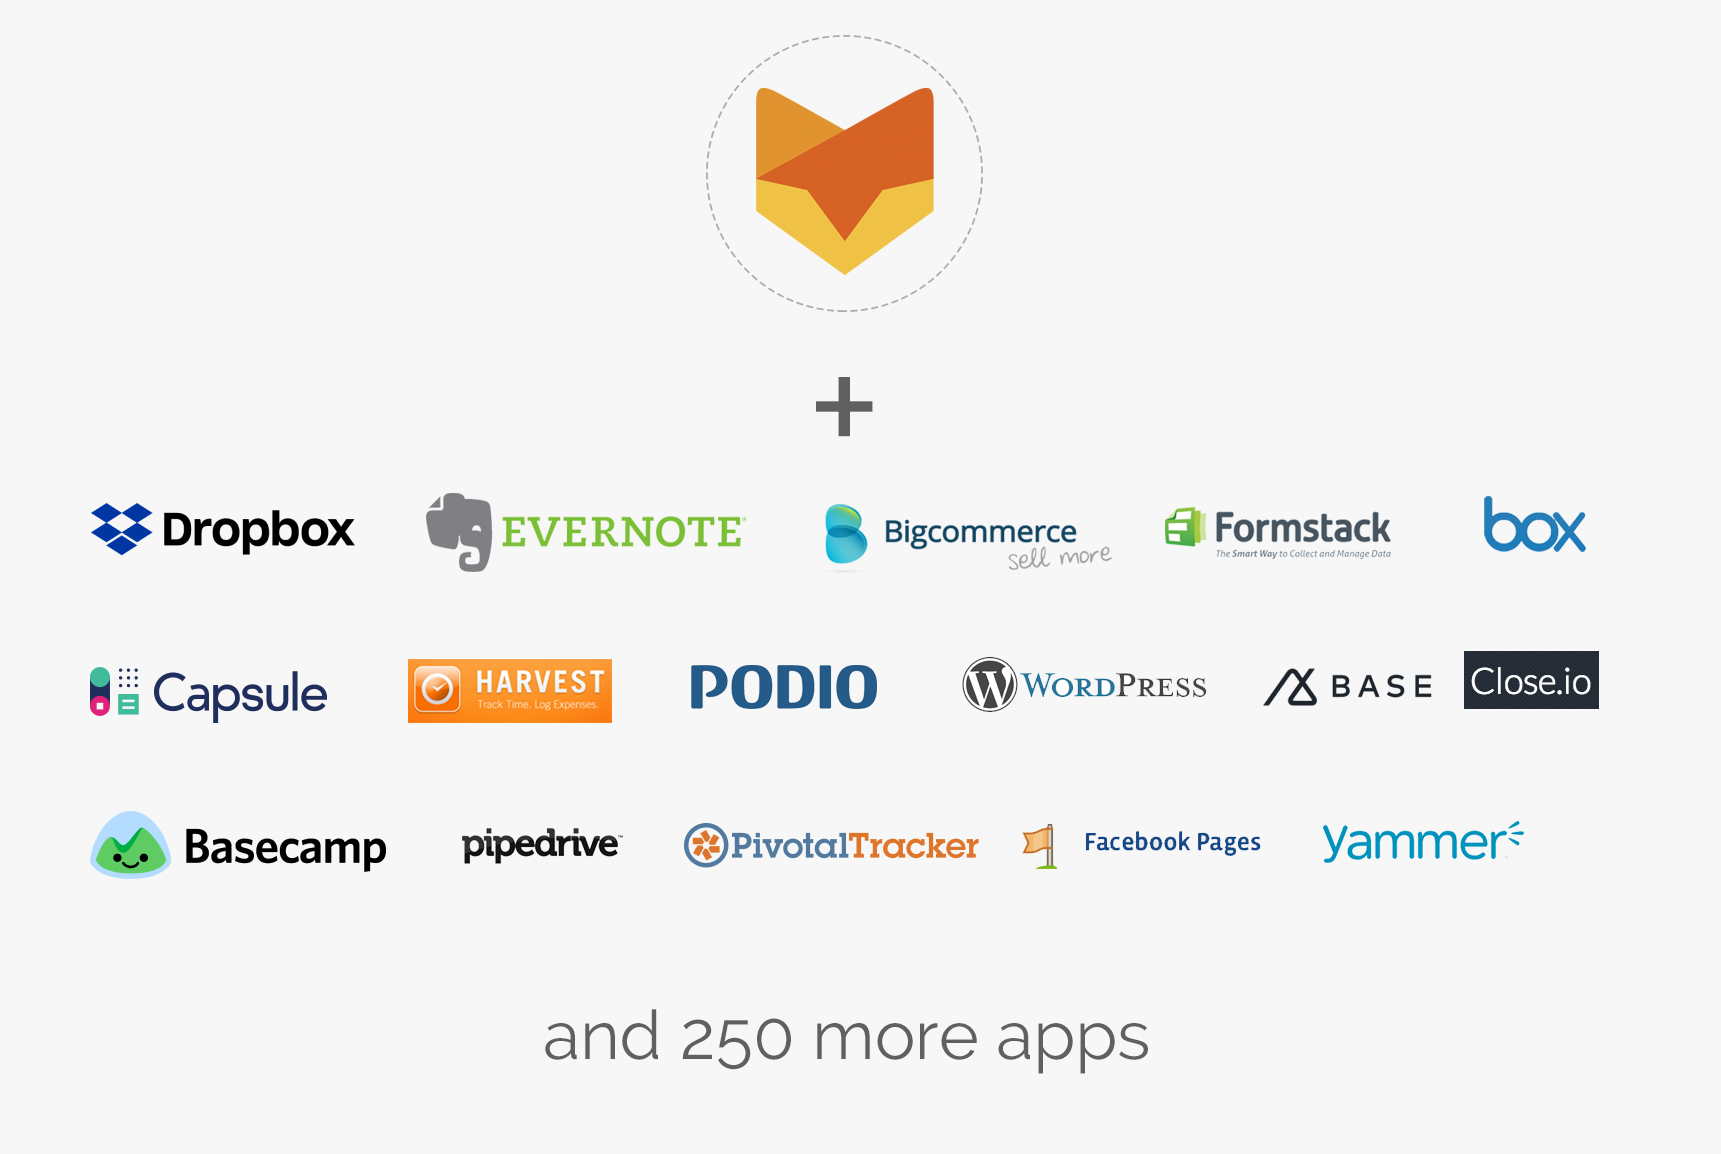 Zapier enables HappyFox to integrate with more than 250 web applications